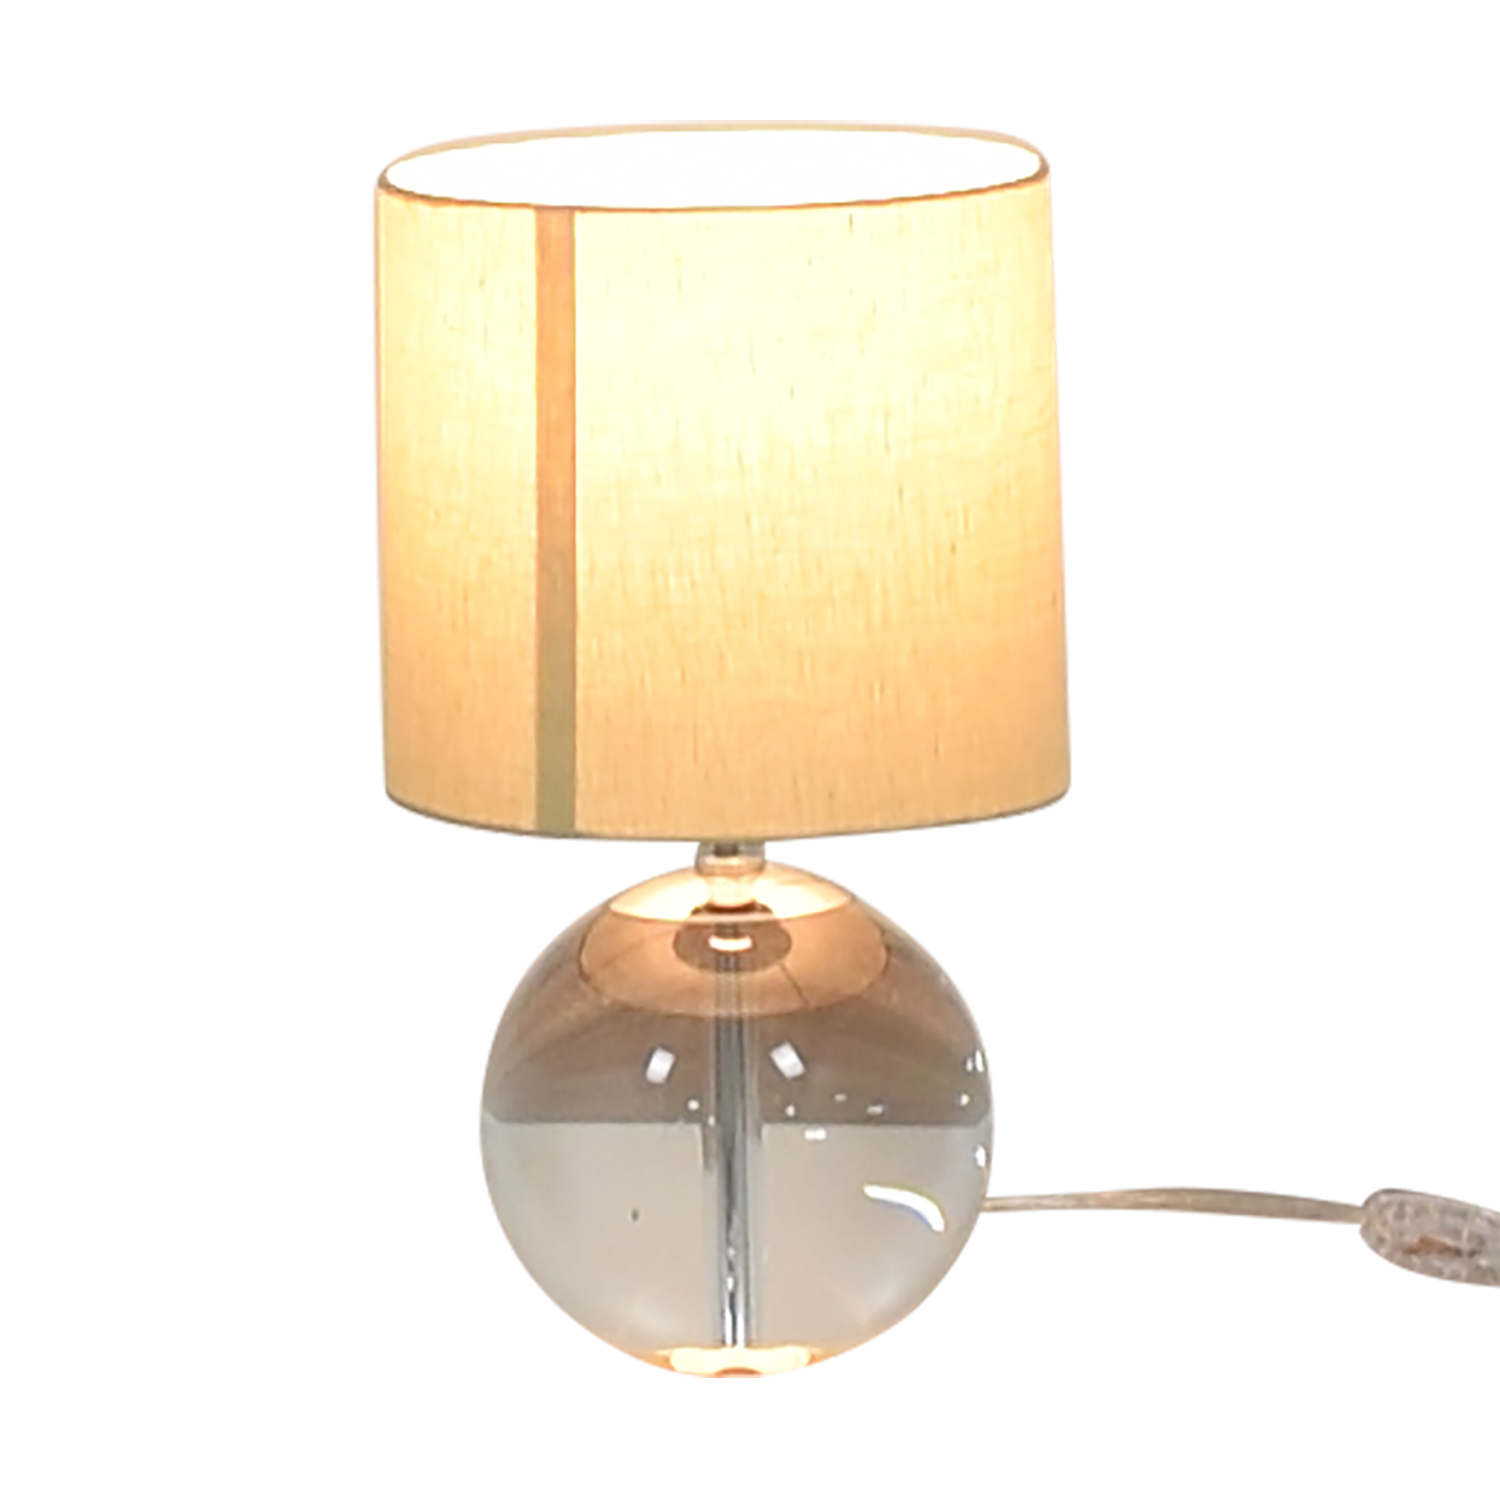 Crate & Barrel Crate & Barrel Round Glass Lamp used